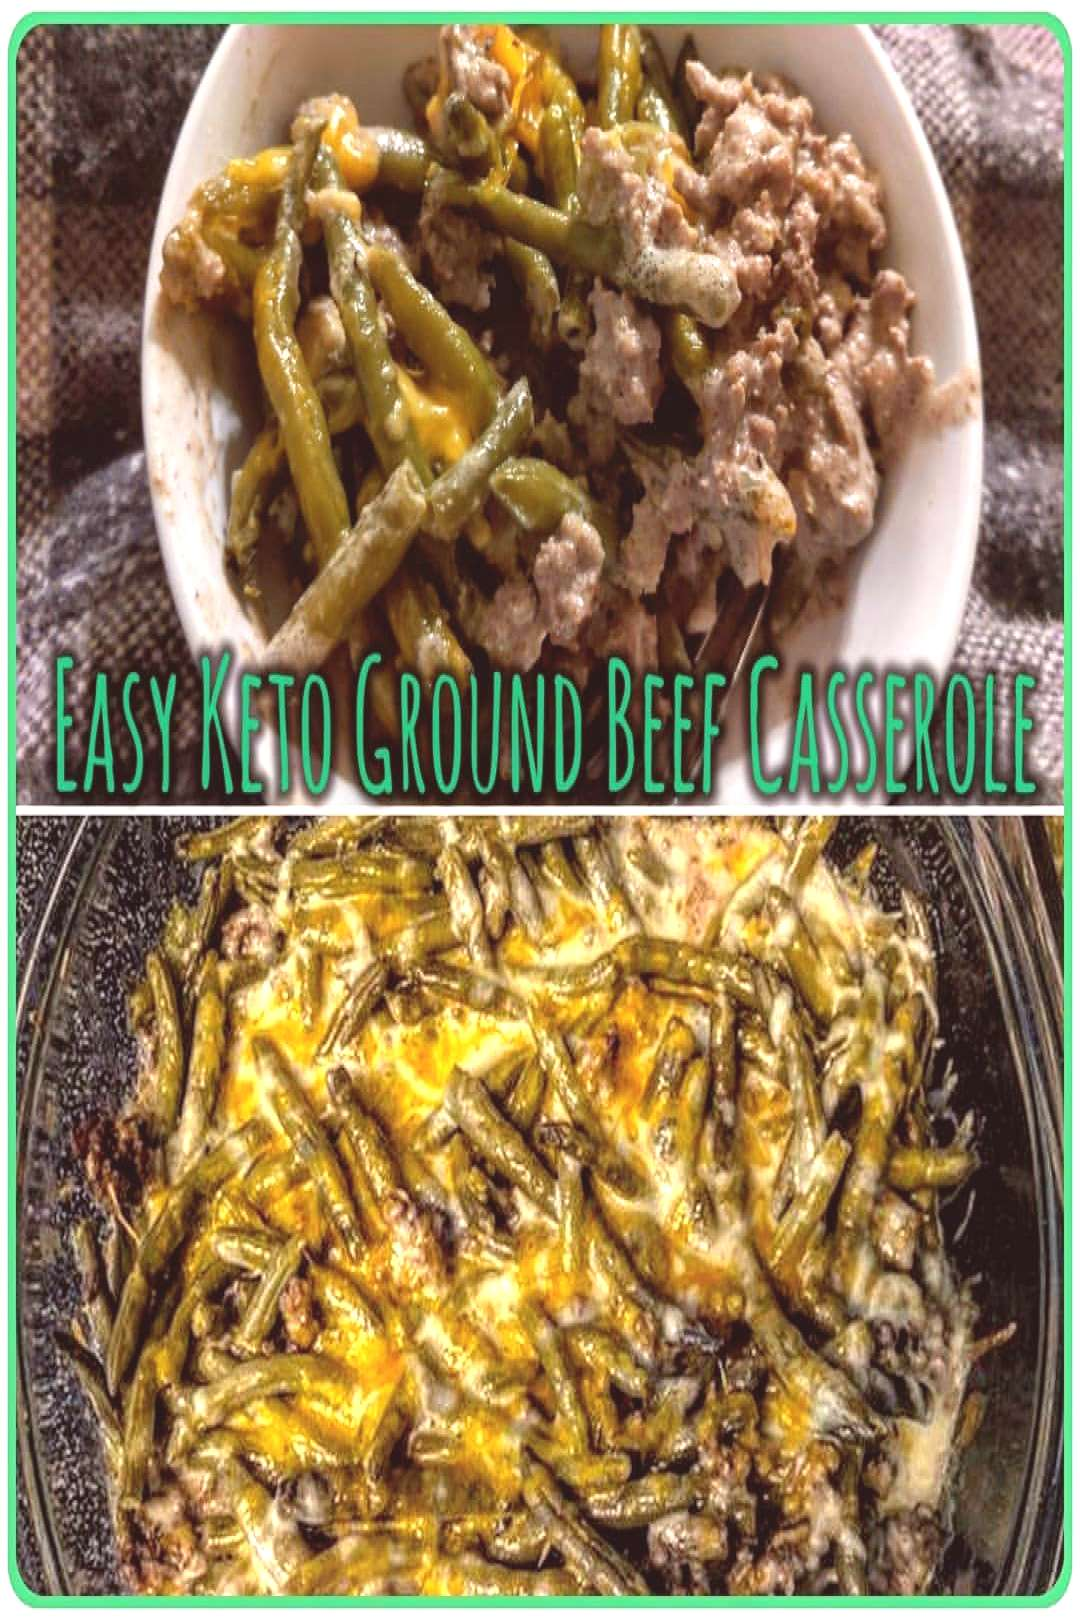 food, possible text that says 'EASY KETO GROUN